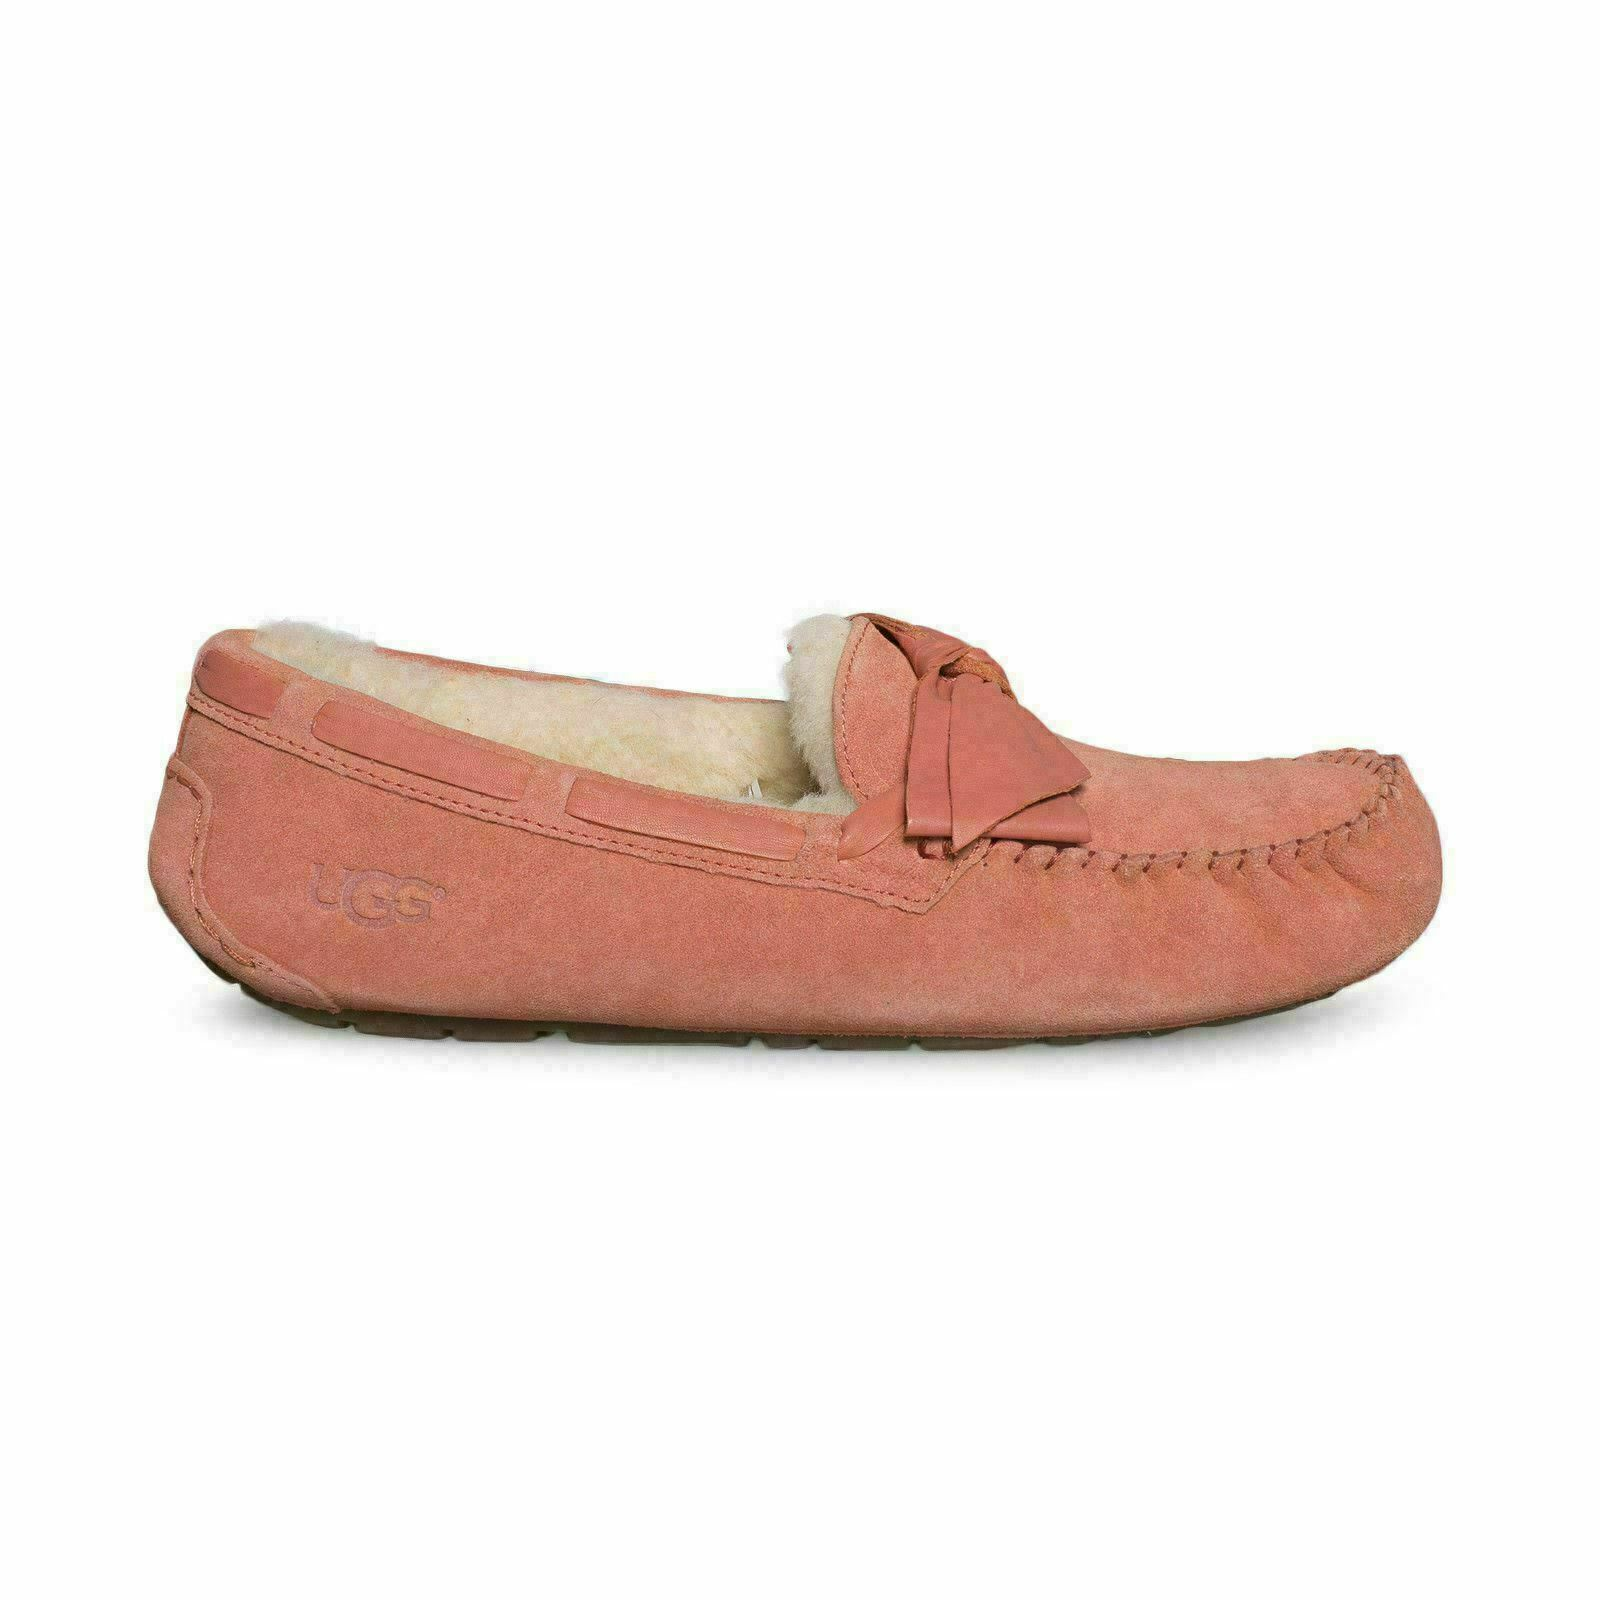 e2468827af4 UGG DAKOTA LEATHER BOW VIBRANT CORAL MOCCASIN WOMEN'S SLIPPERS SIZE US 12  NEW